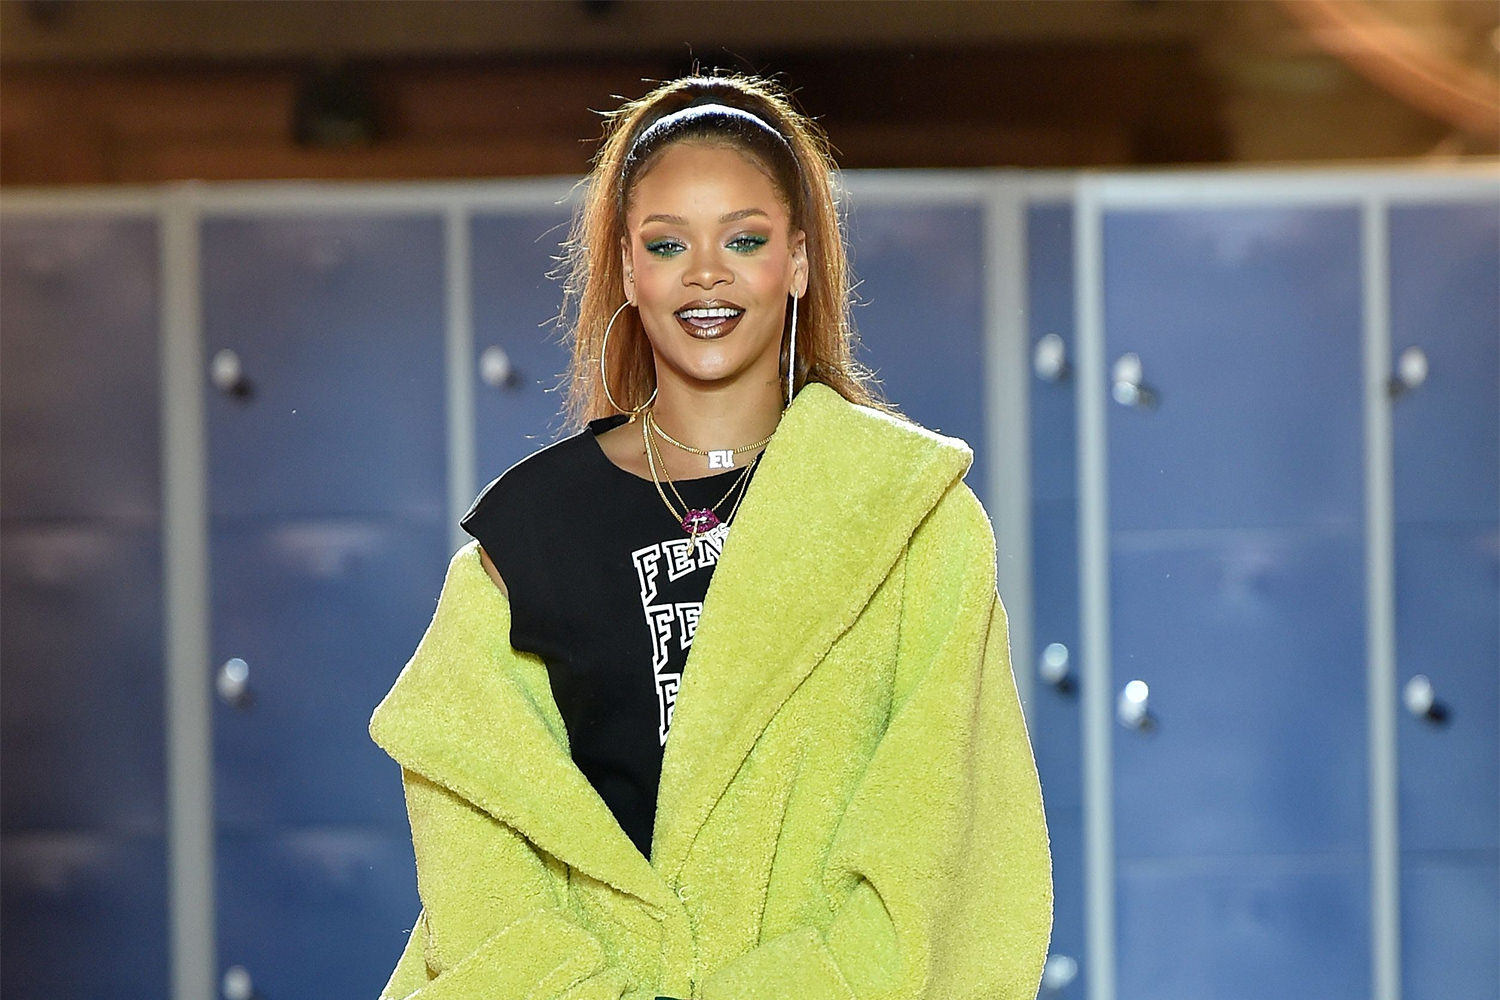 Google themes rihanna - Today Rihanna Took Over The National Library Of France In Paris For The Presentation Of The Fenty X Puma Fall Winter 2017 Collection